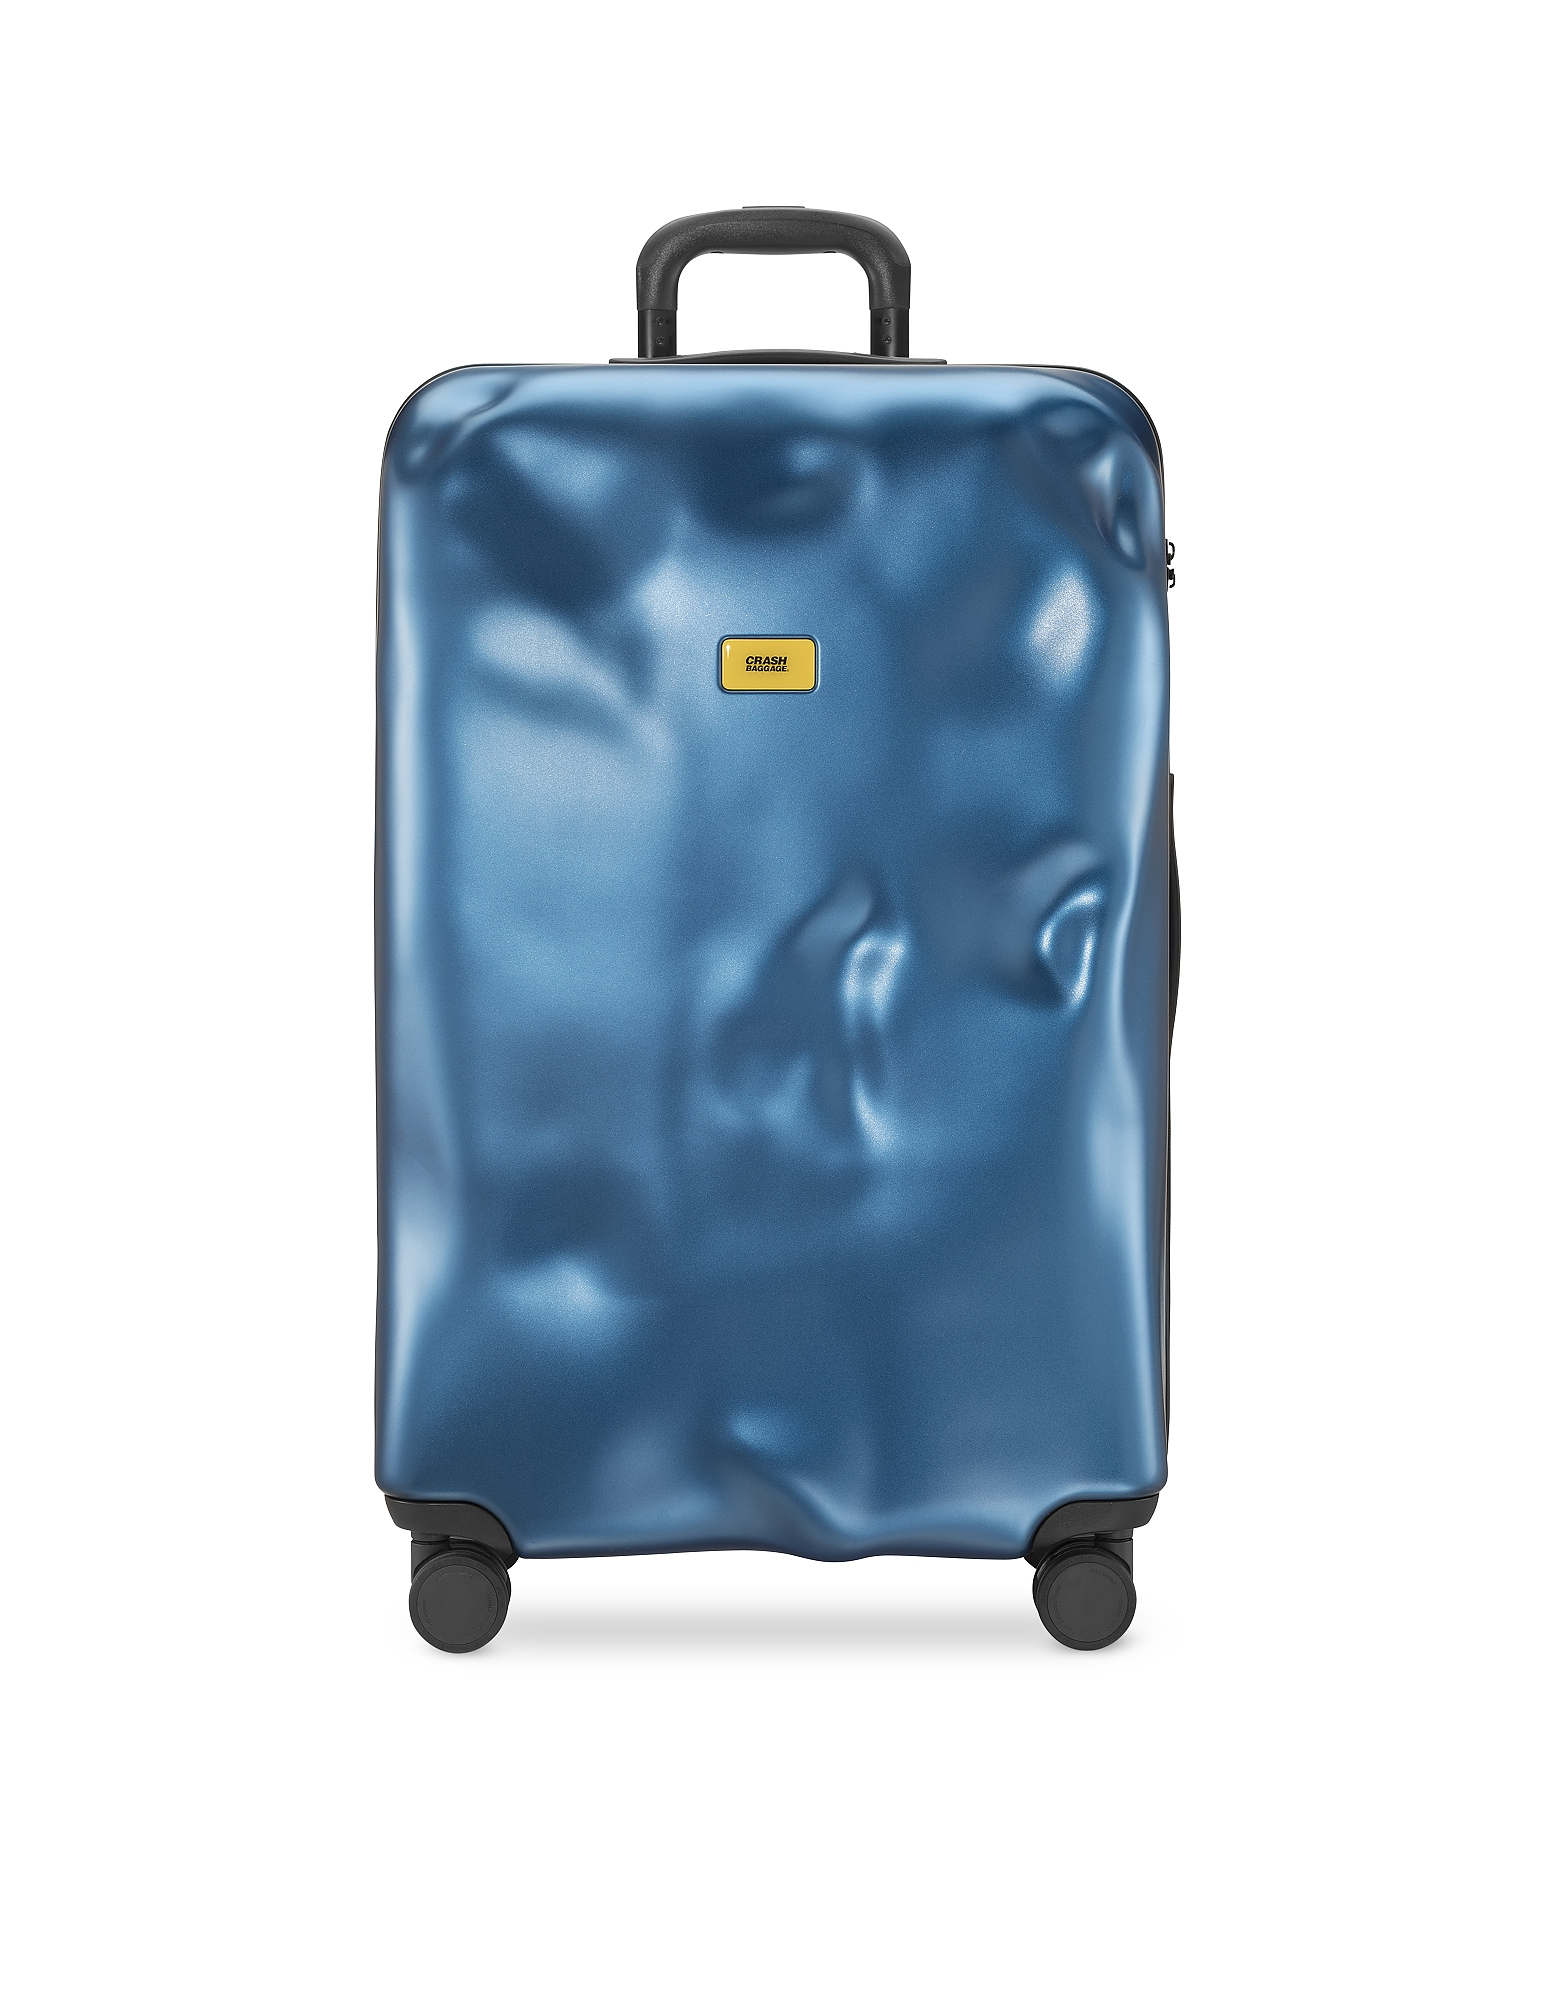 Crash Baggage Travel Bags, Icon Large Trolley